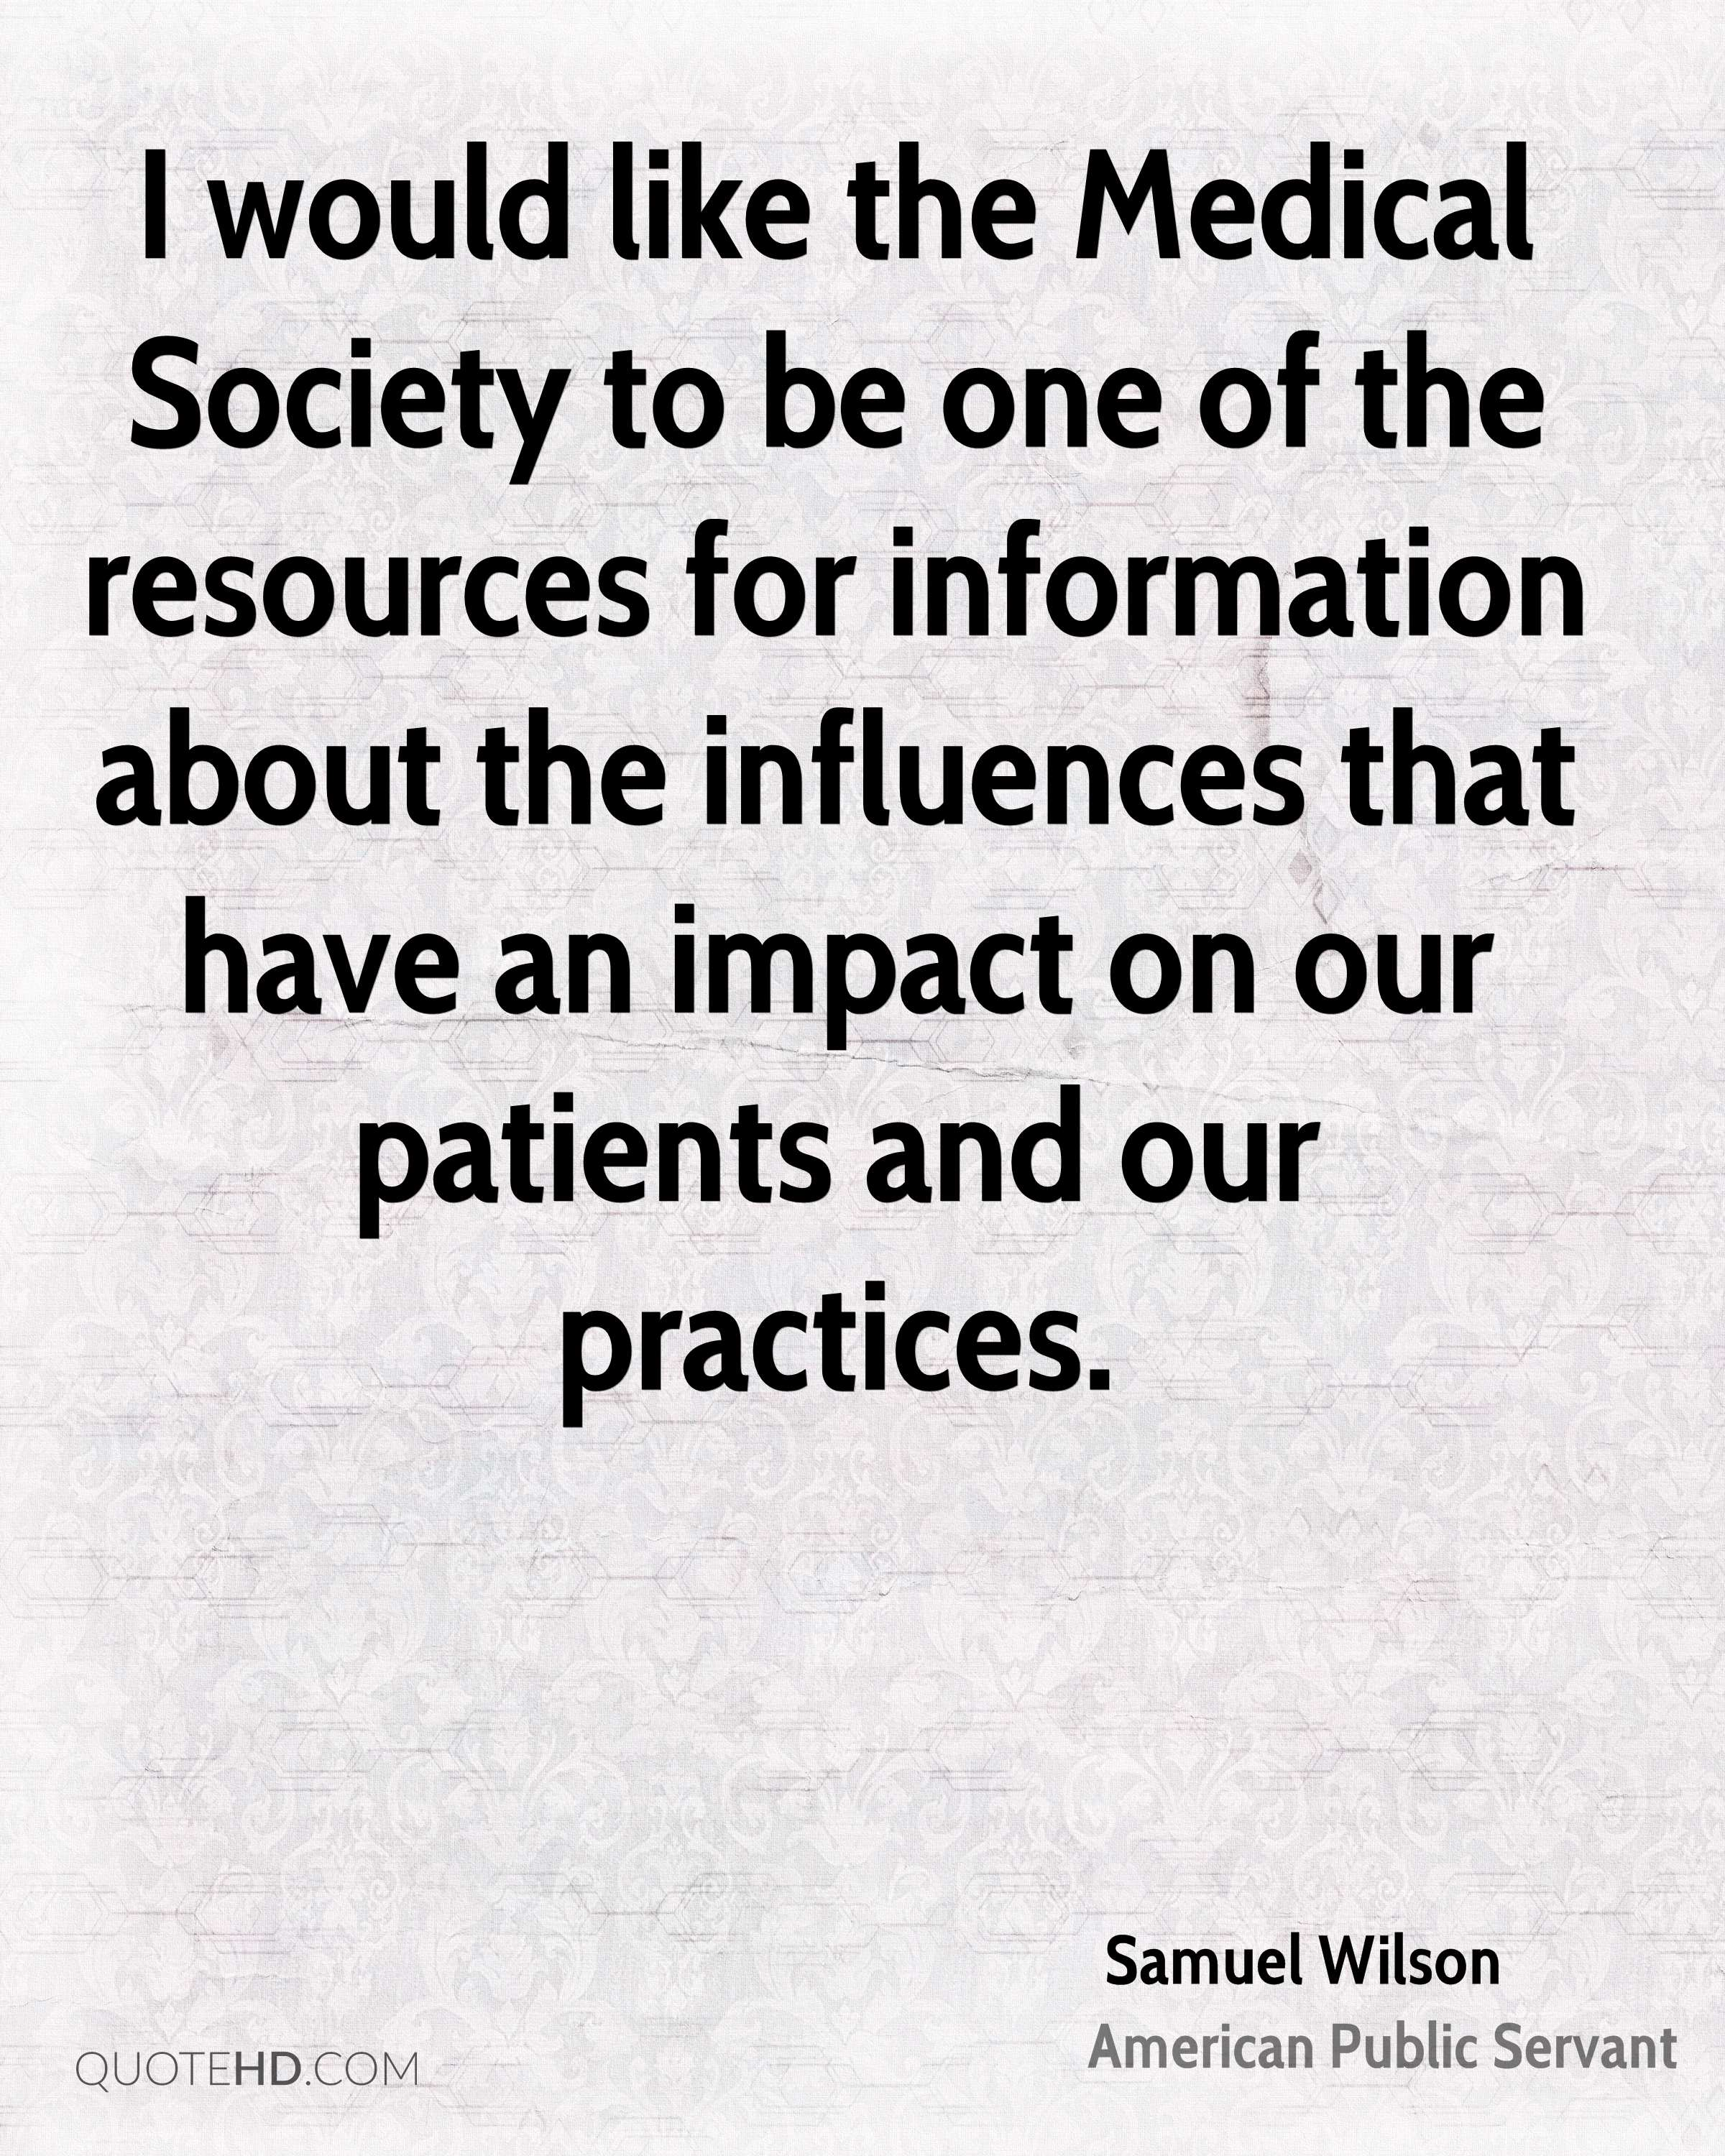 I would like the Medical Society to be one of the resources for information about the influences that have an impact on our patients and our practices.